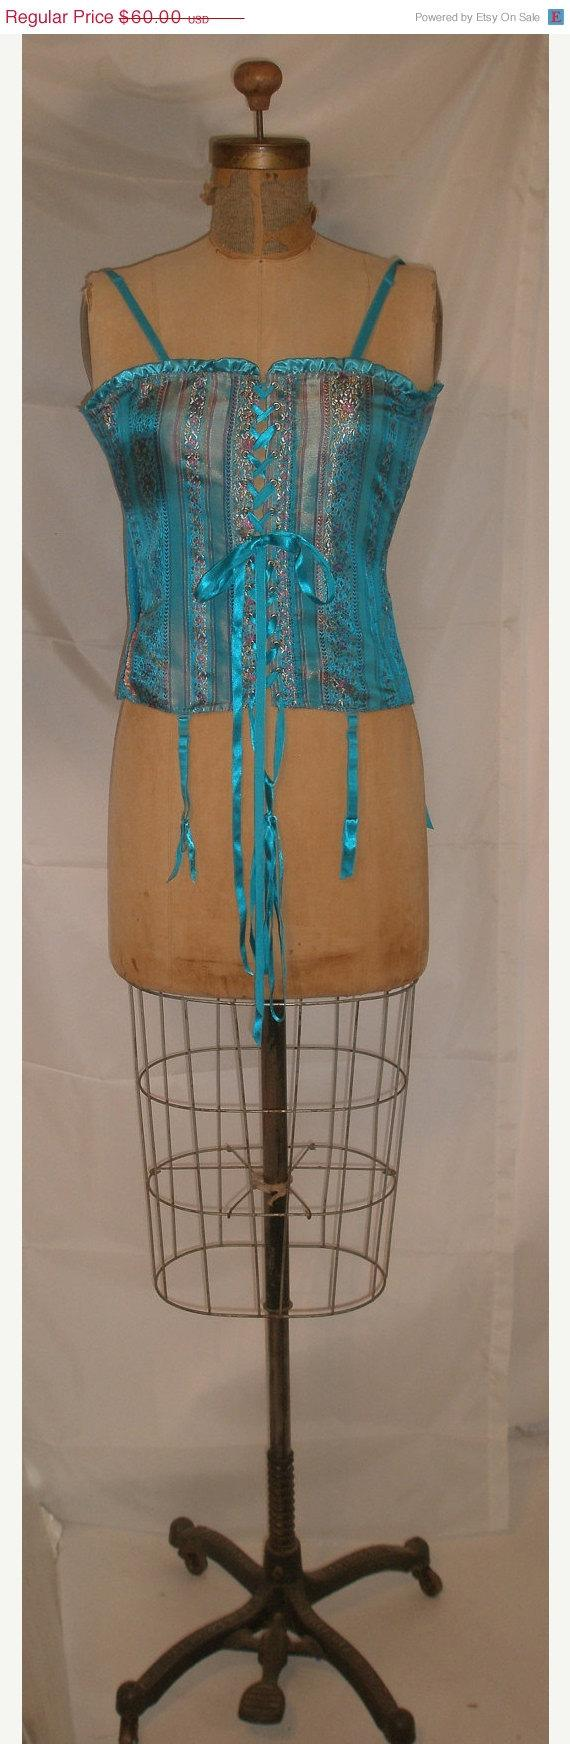 Mariage - WINTER CLEARANCE SALE Great Corset-Bustier-Fredericks of Hollywood-Medium-36 Bust-Size 4-Pin Up-Burlesque